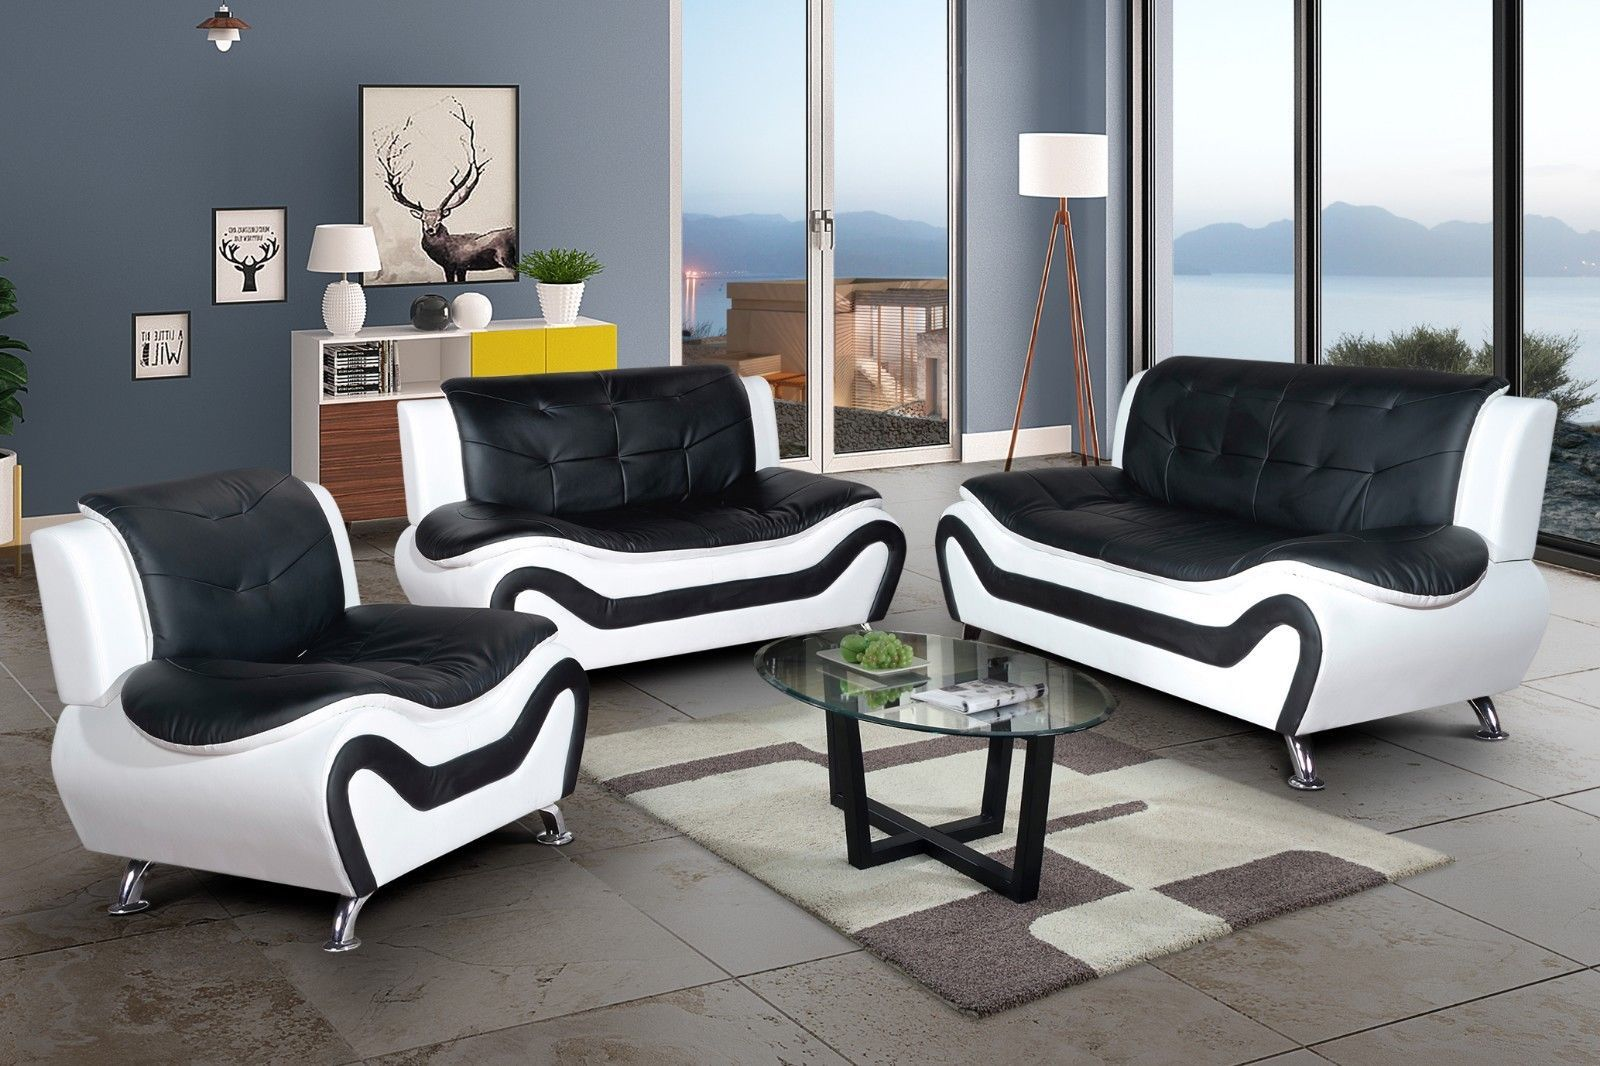 Strange Aycp Furniture 3Pc Living Room Sofa Set Faux Leather Blk Dailytribune Chair Design For Home Dailytribuneorg